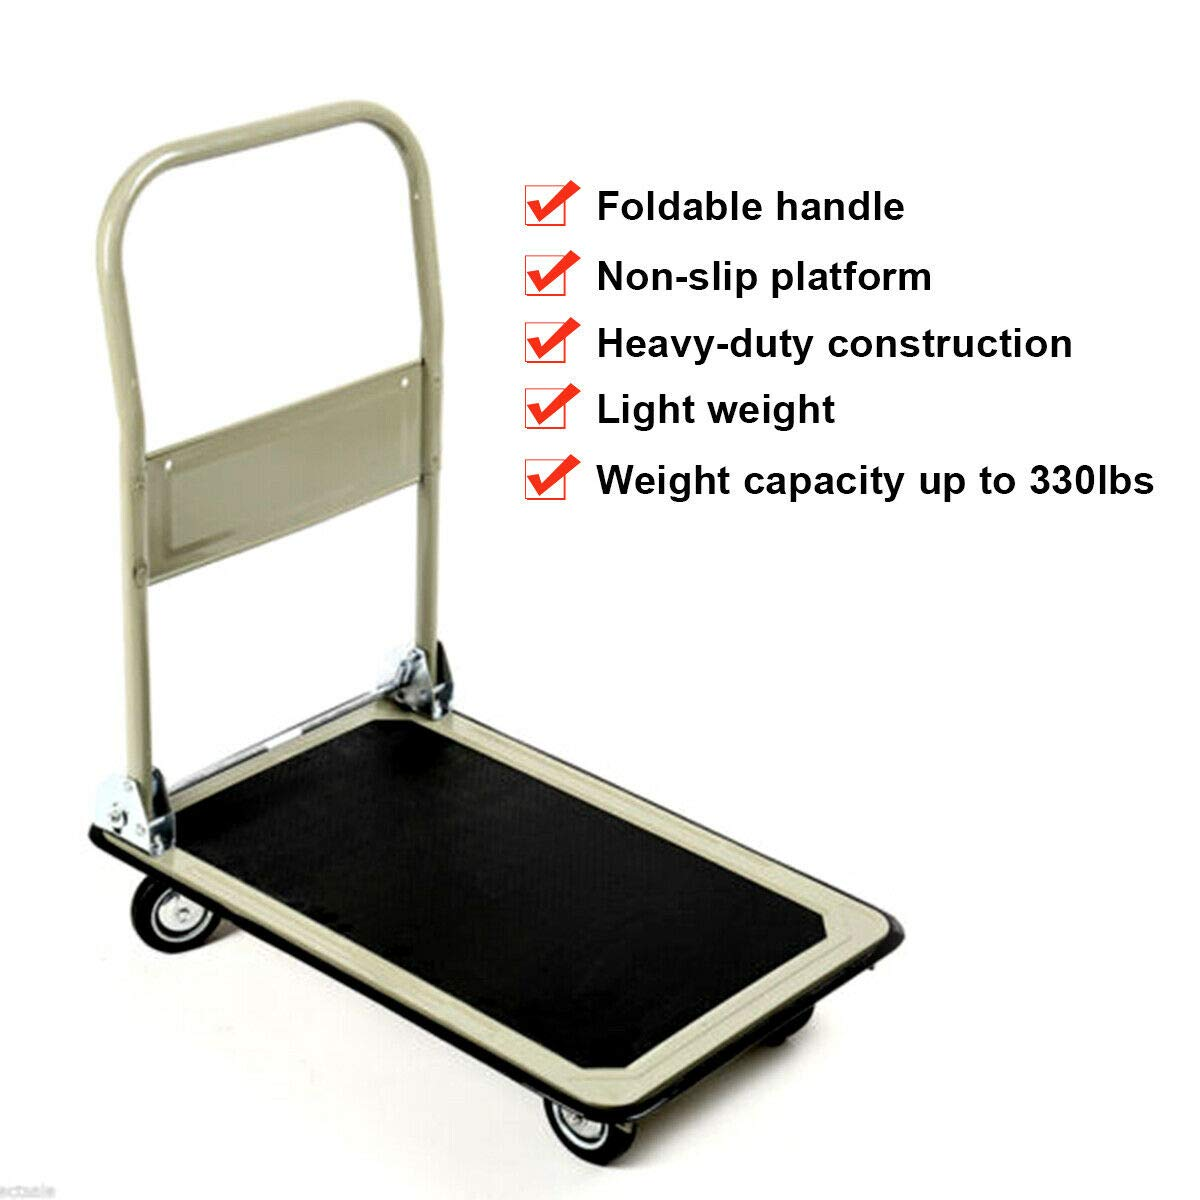 Gray 330lbs Platform Cart Folding Foldable Dolly Push Hand Truck Moving Warehouse Transport Heavy Large Loads(U.S. Stock) by Heize best price (Image #4)